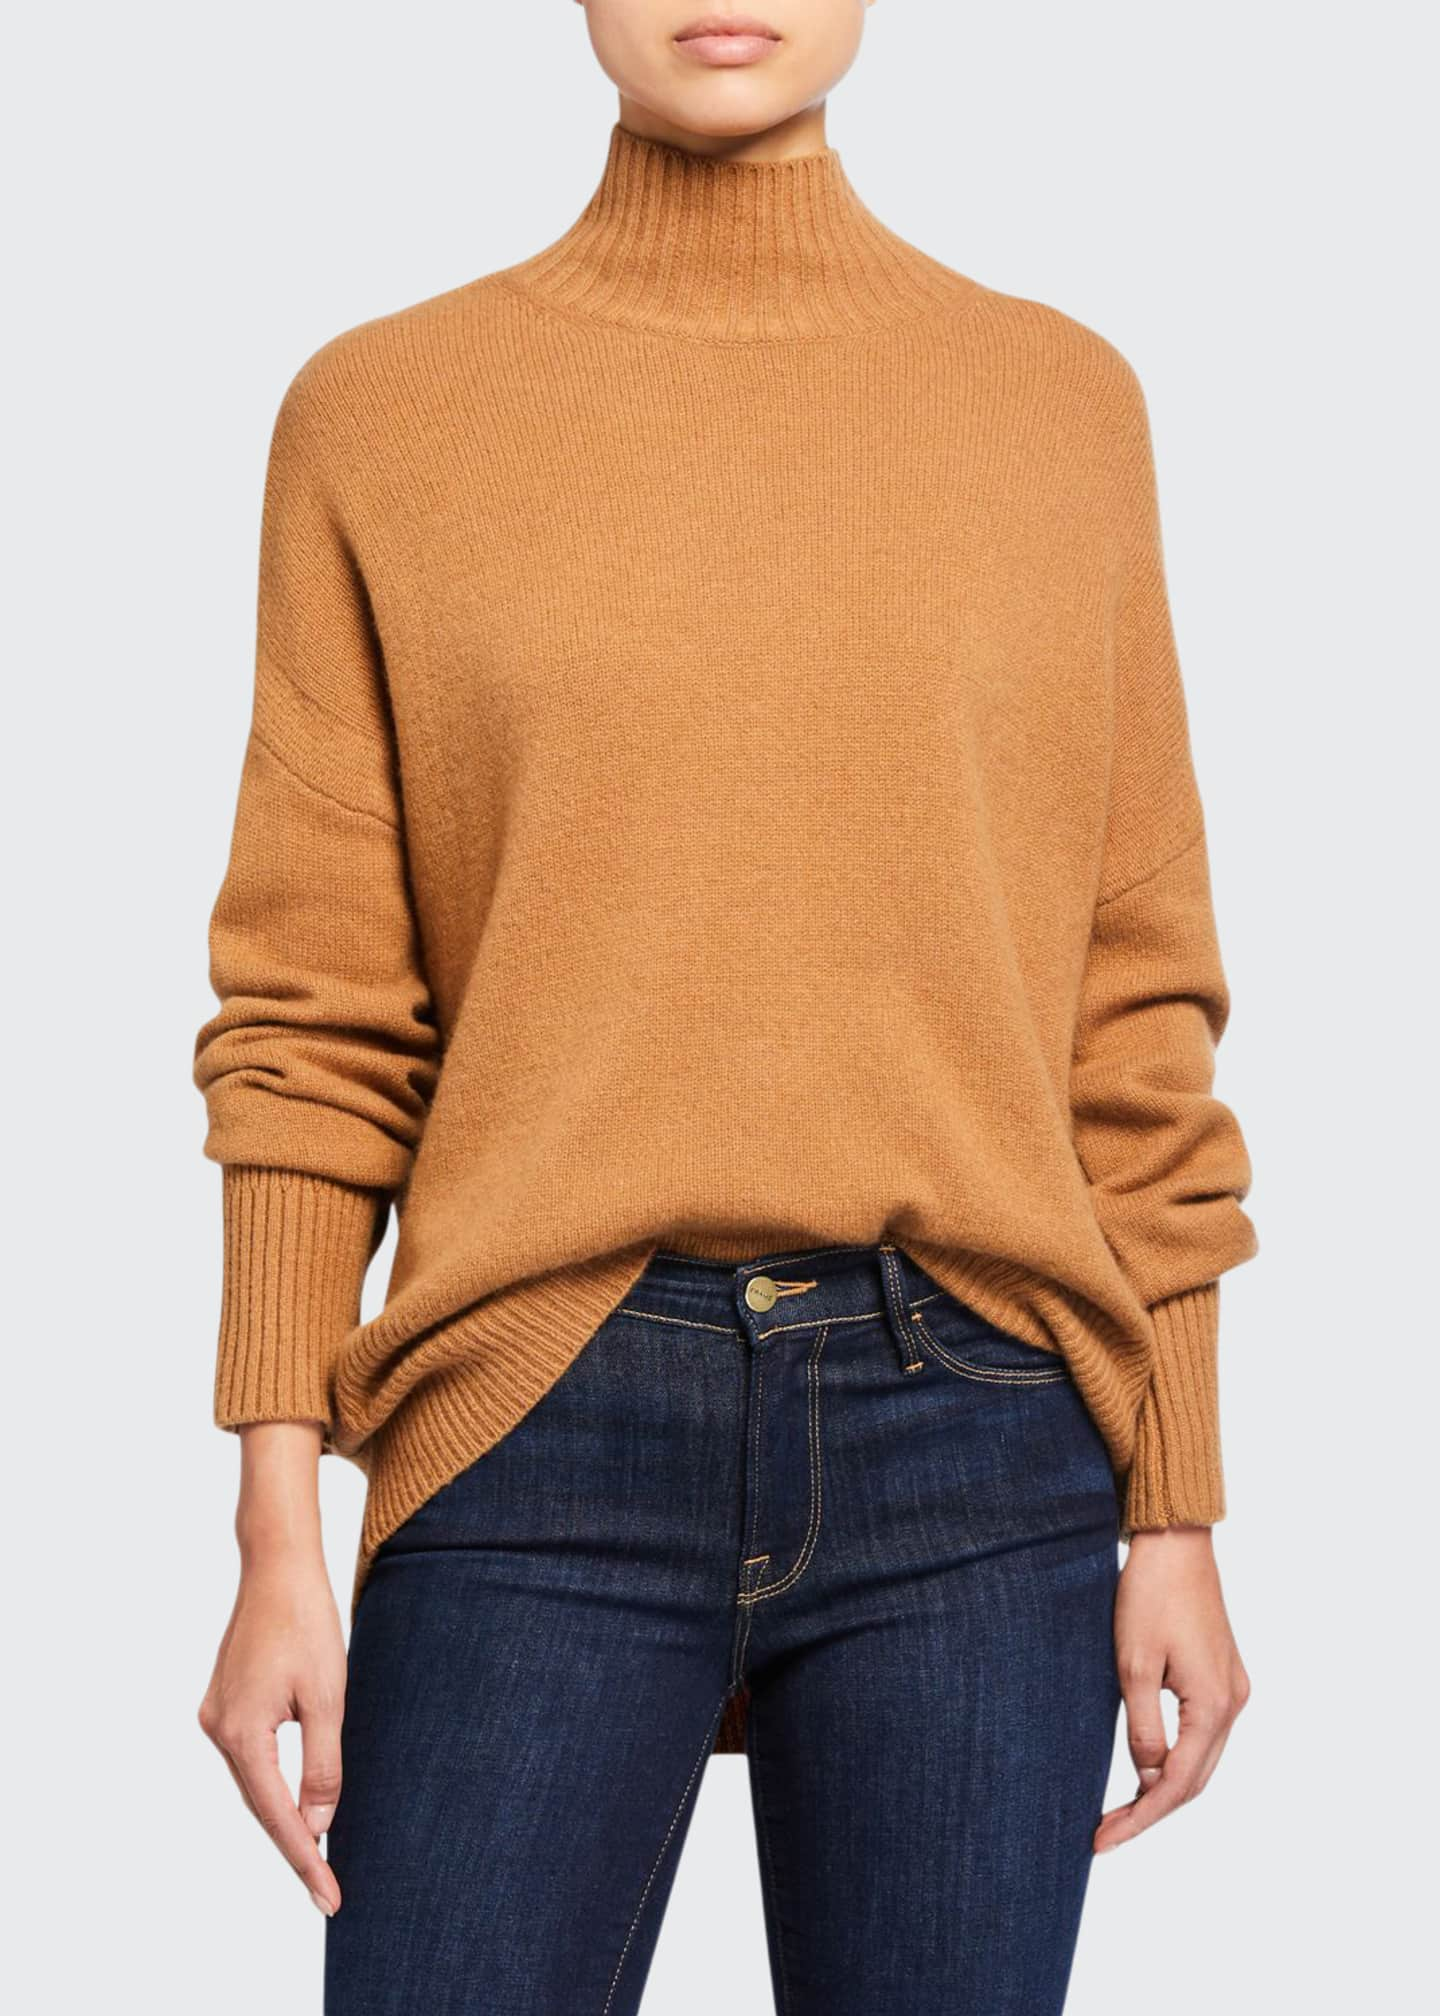 FRAME High-Low Sustainable Cashmere Turtleneck Sweater